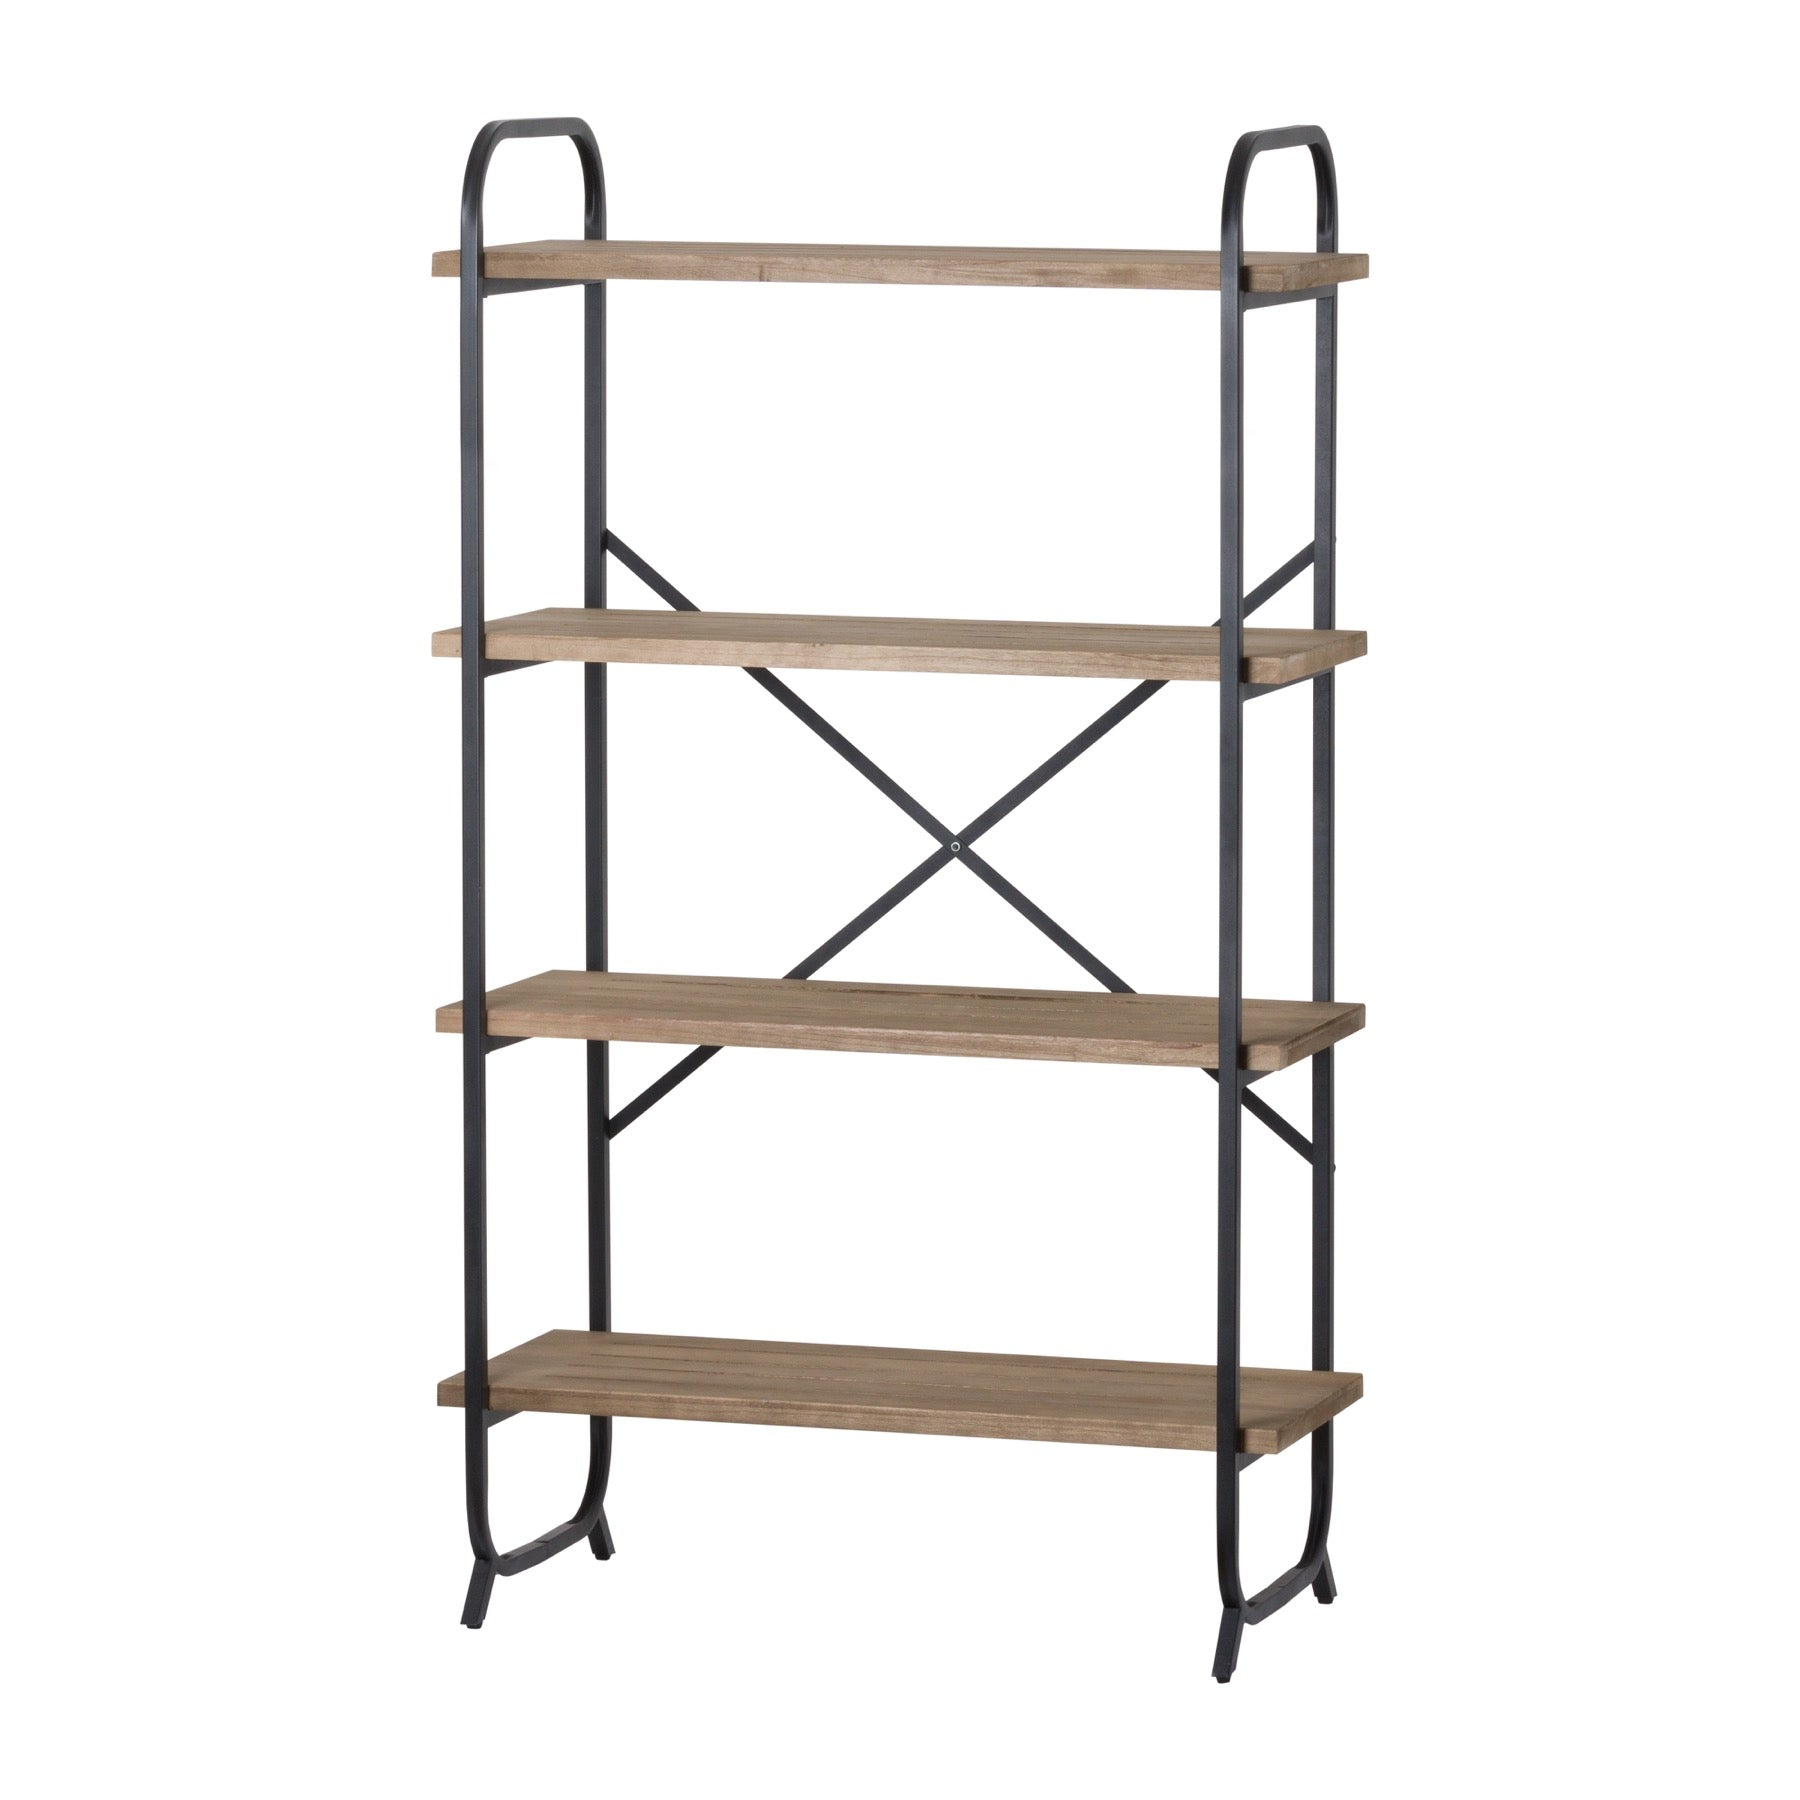 Four Tier Shelf Cross Section Industrial Display Unit